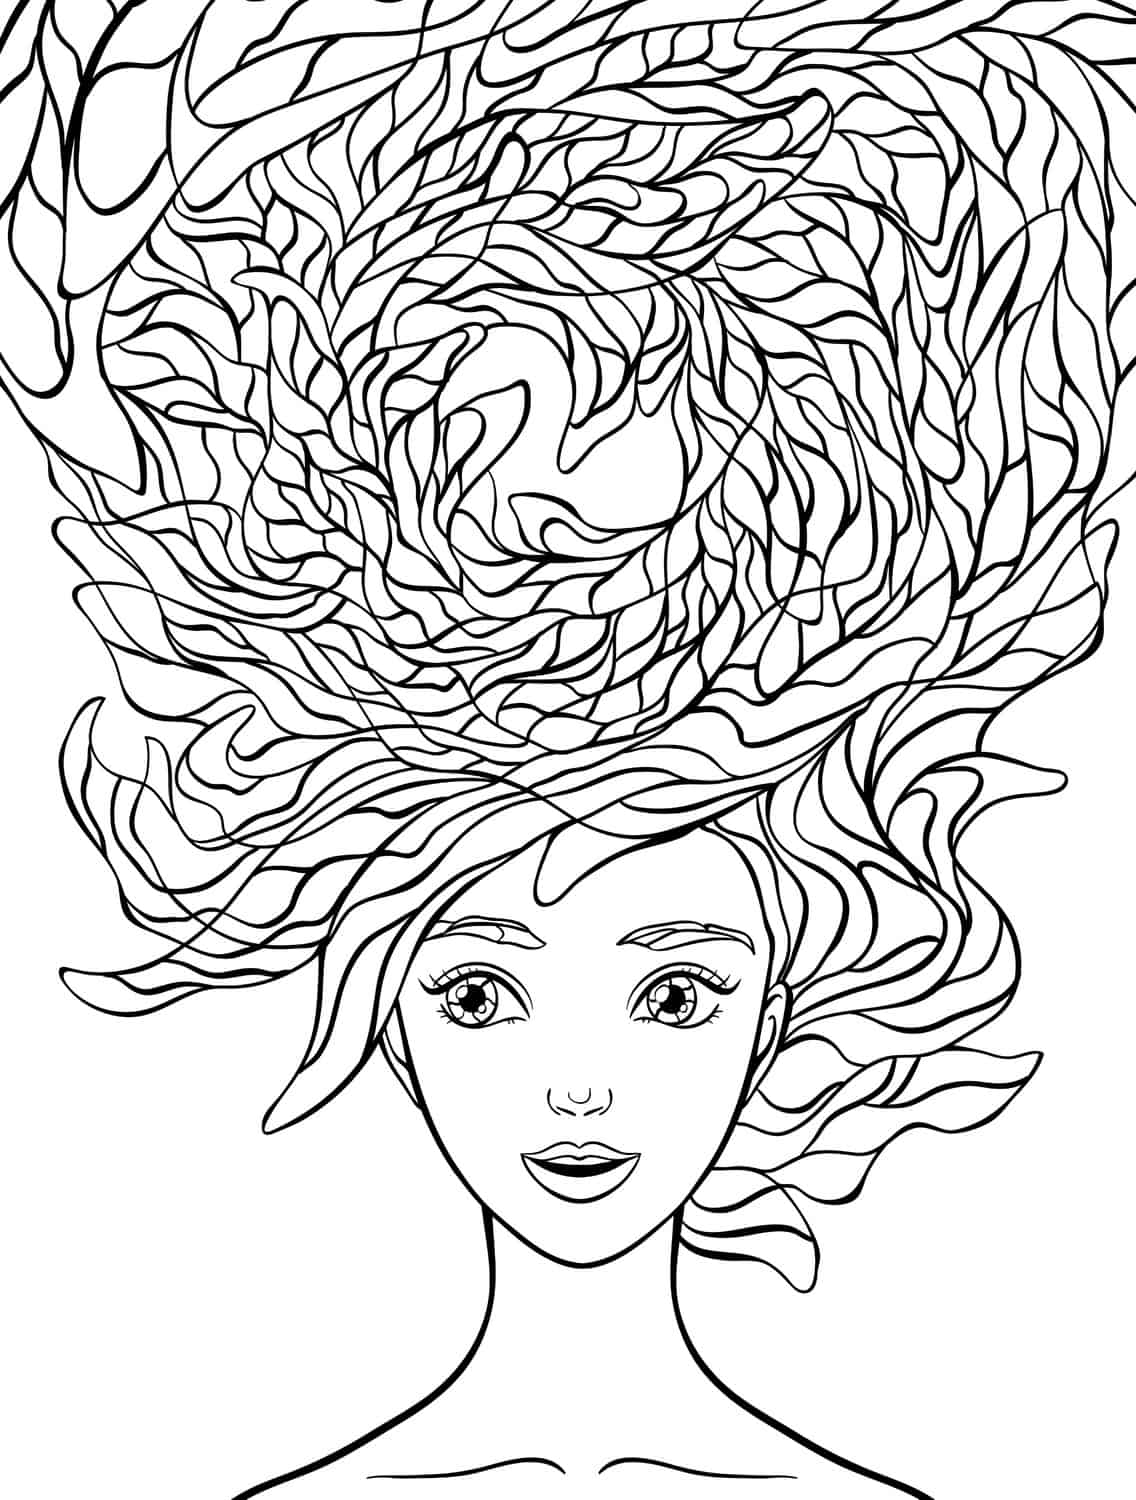 Image result for crazy coloring pages for adults | Dolphin ... | 1500x1136